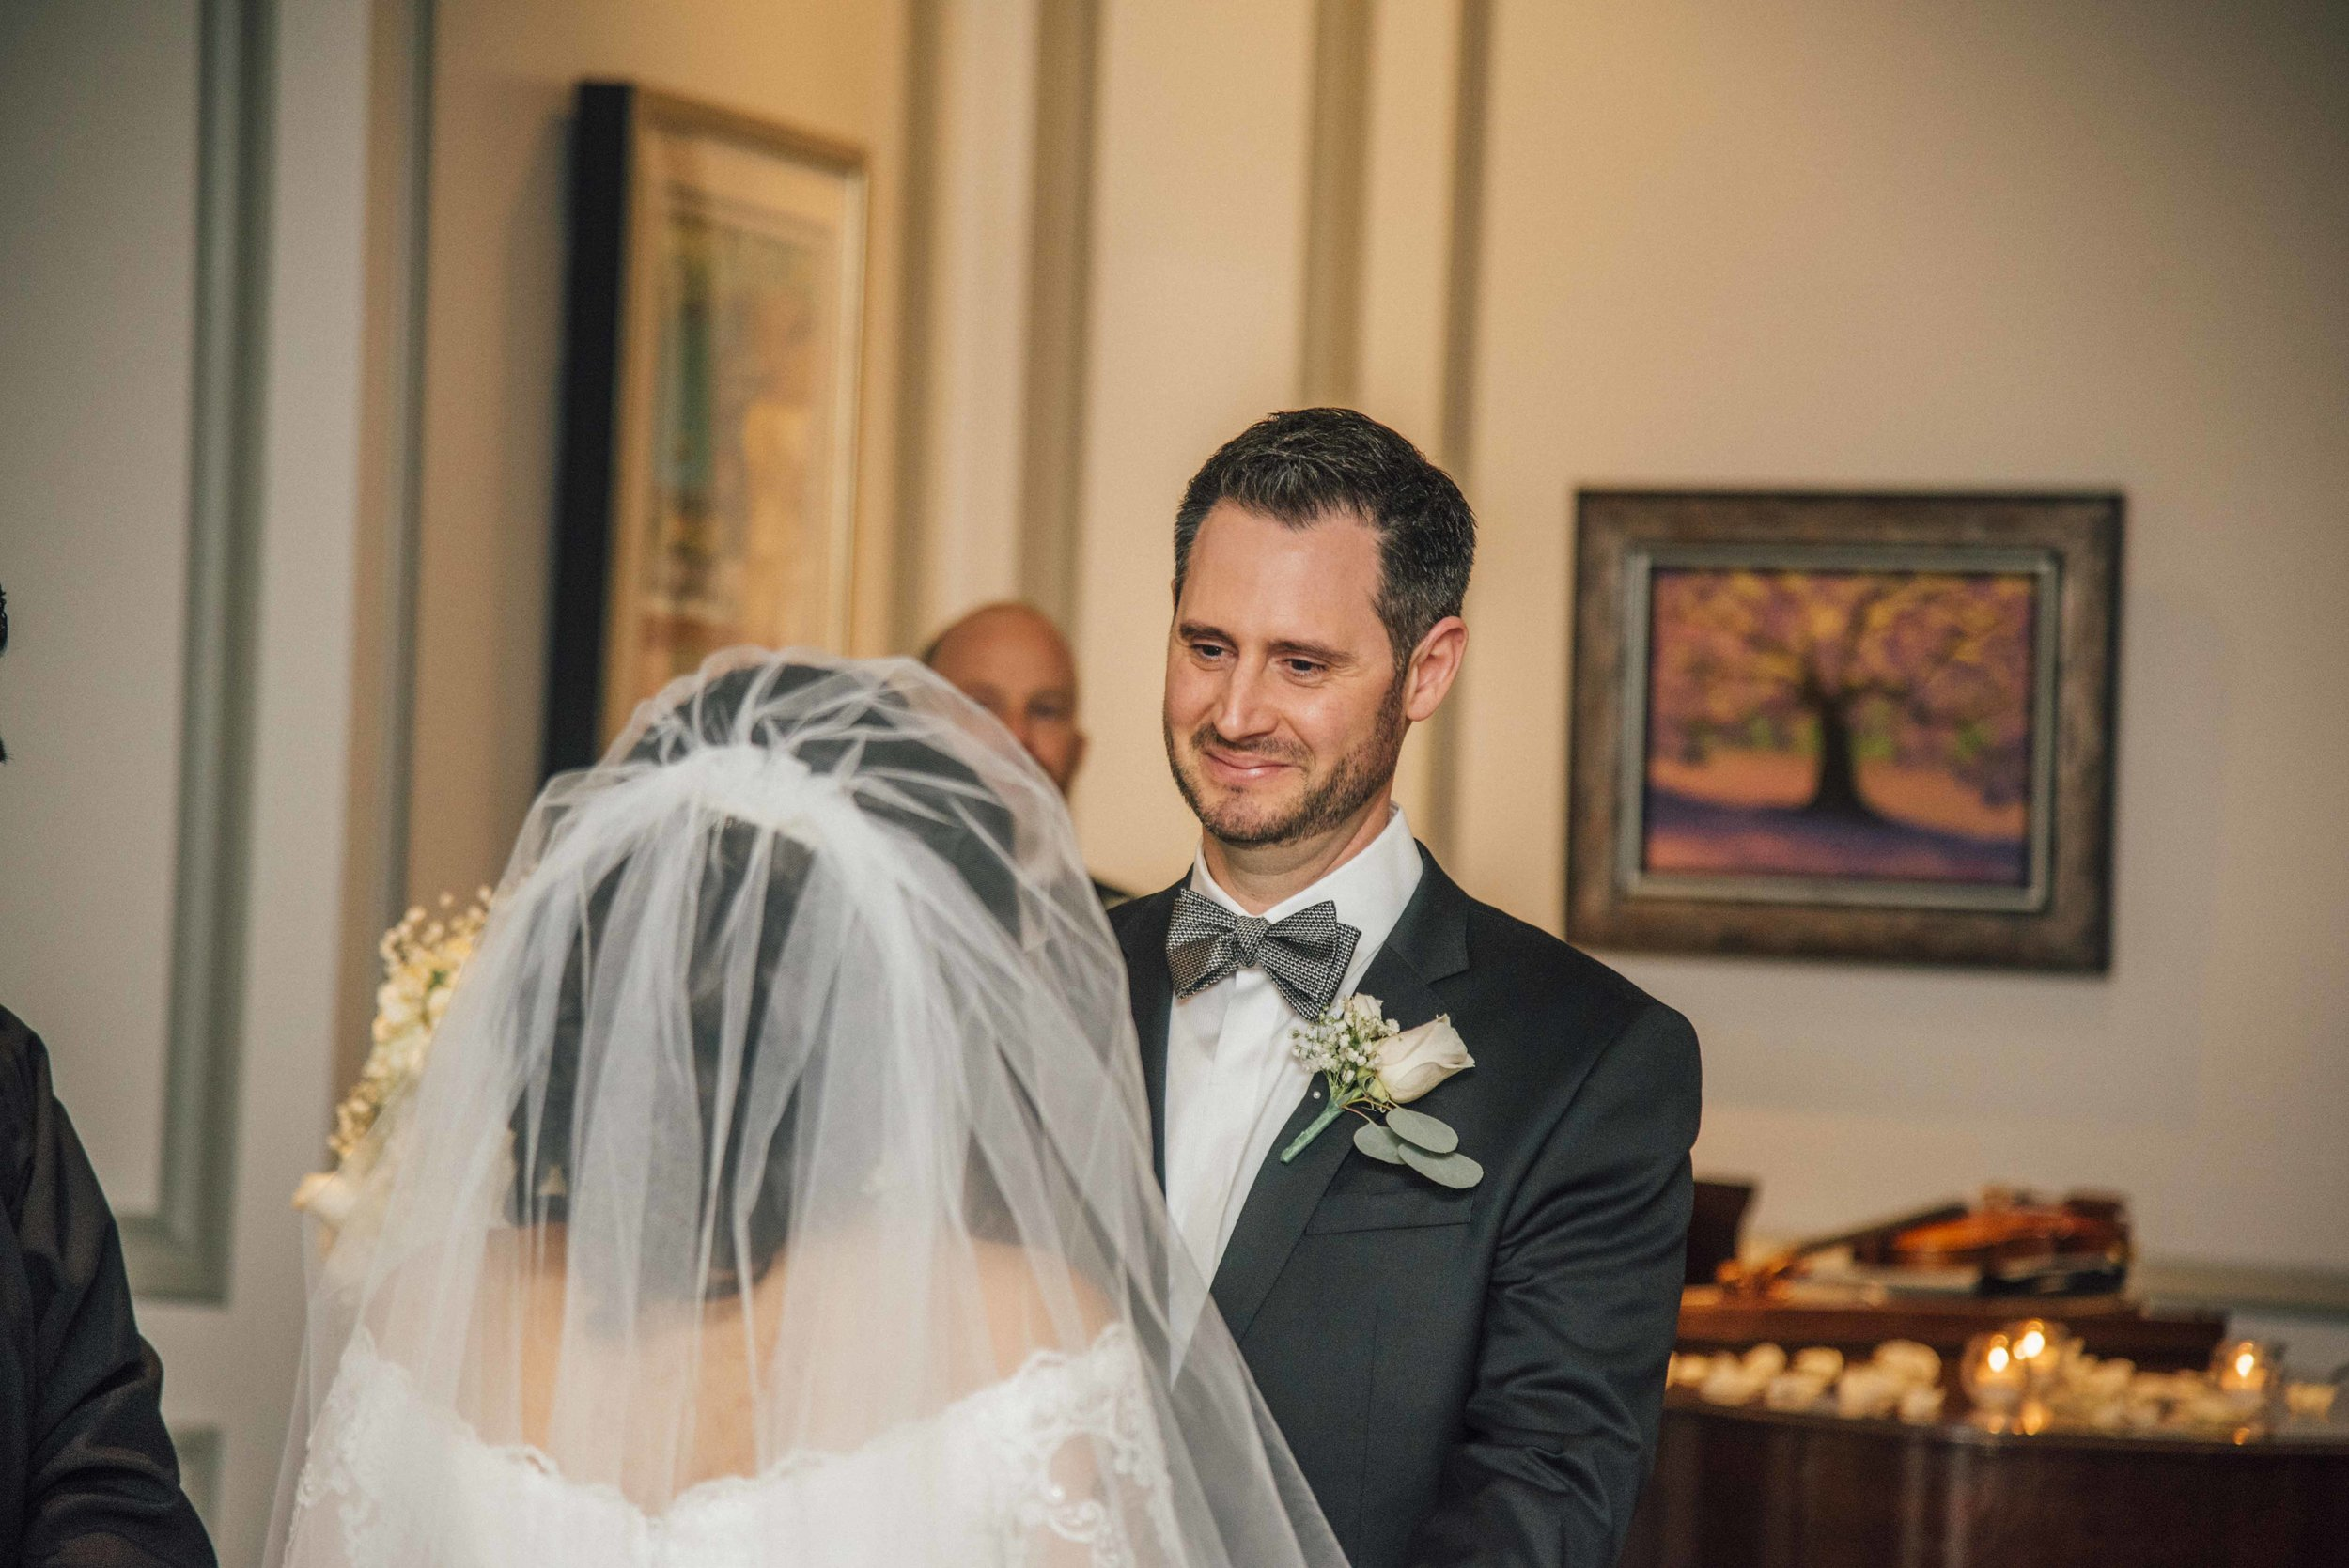 *Aumat & Bill Wedding 2019 309.jpg